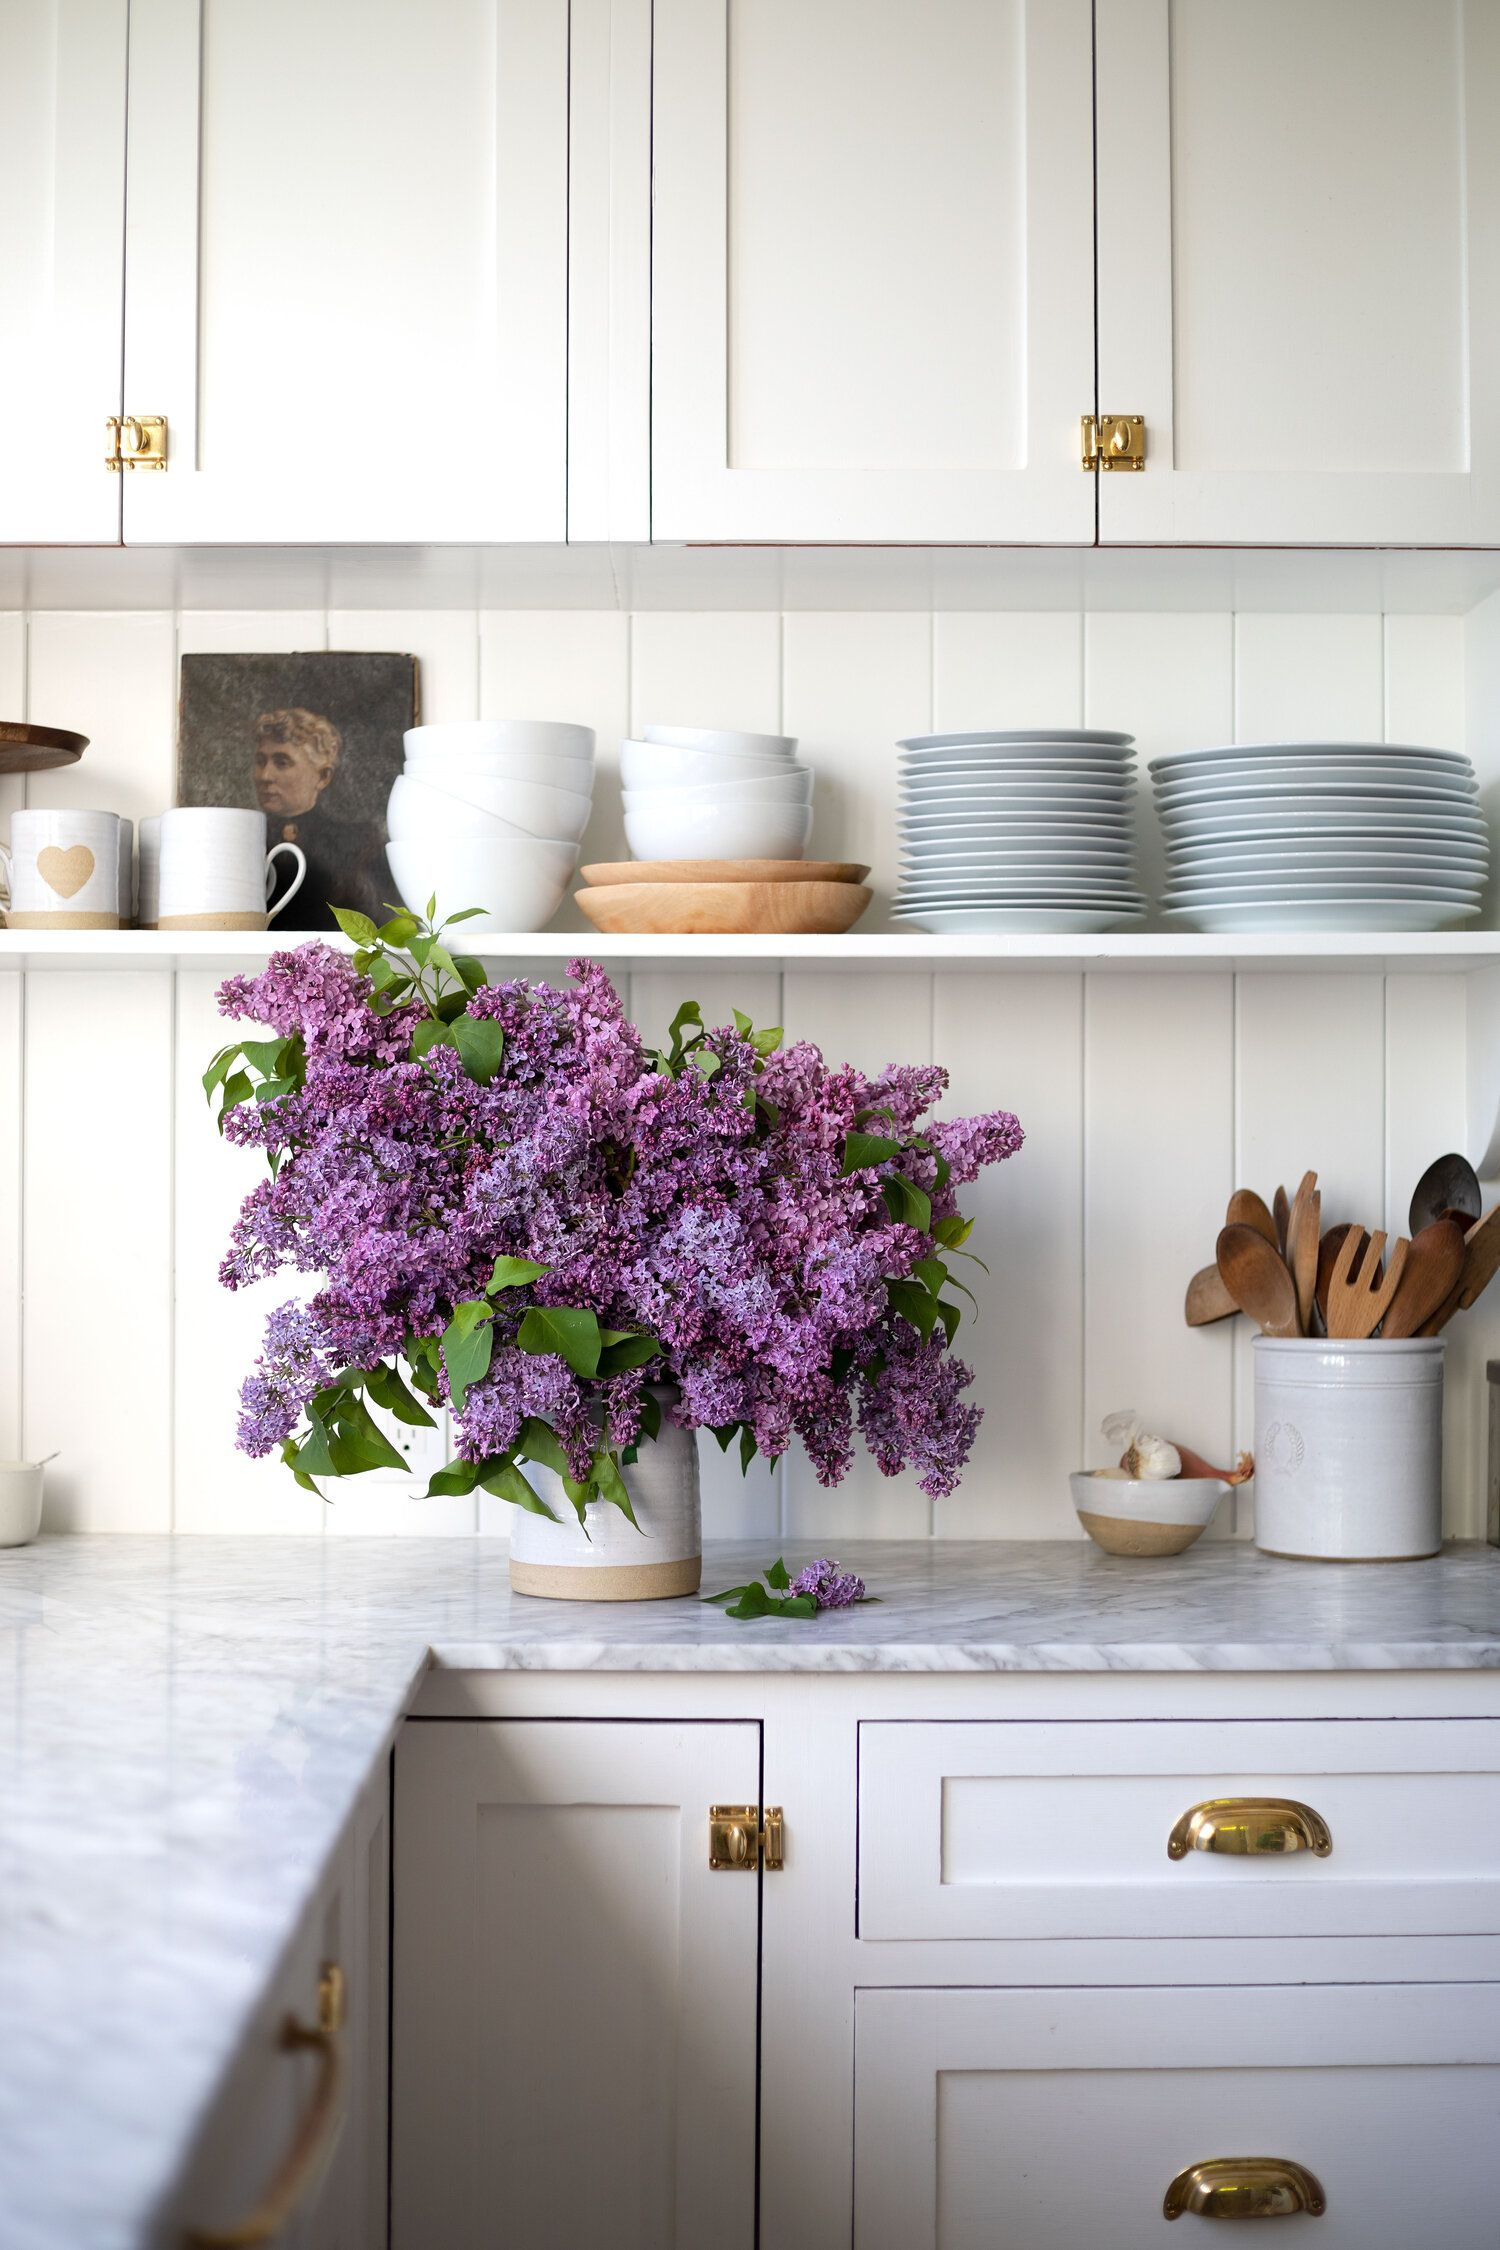 How To Arrange An Overflowing Bouquet Of Lilacs Keep Them From Wilting The Grit And Polish In 2020 Kitchen Decor Kitchen Remodel Home Kitchens